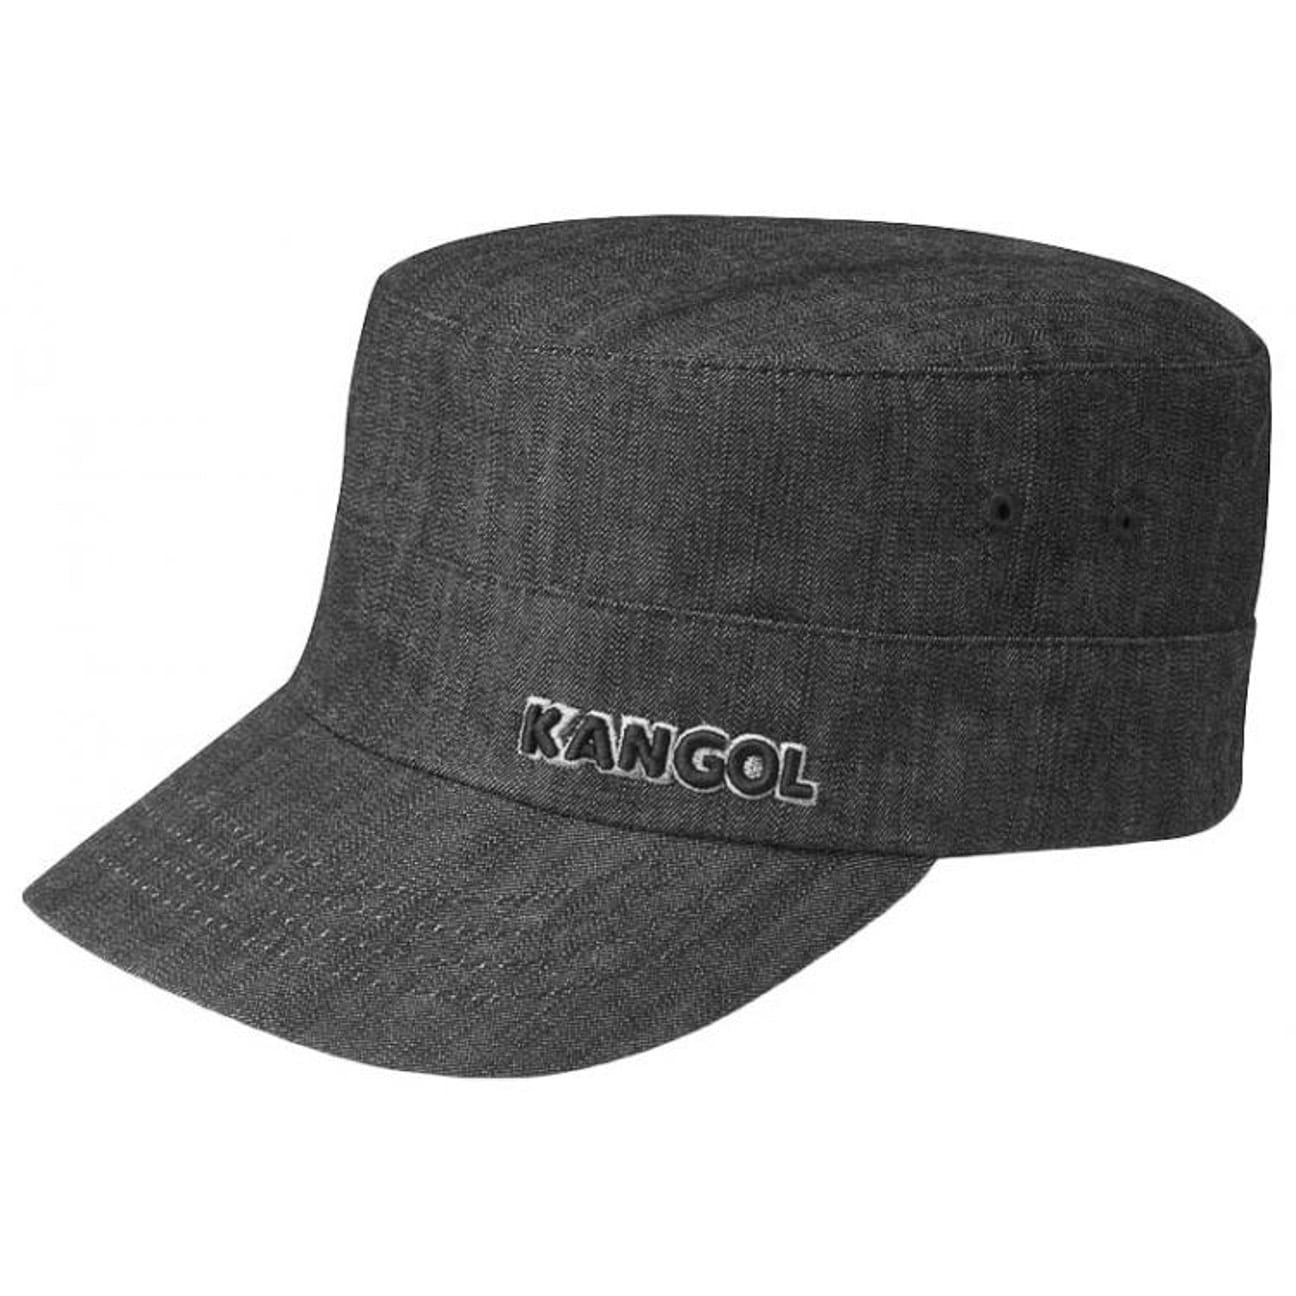 83cc09cef37c8 Flexfit Denim Army Cap. by Kangol